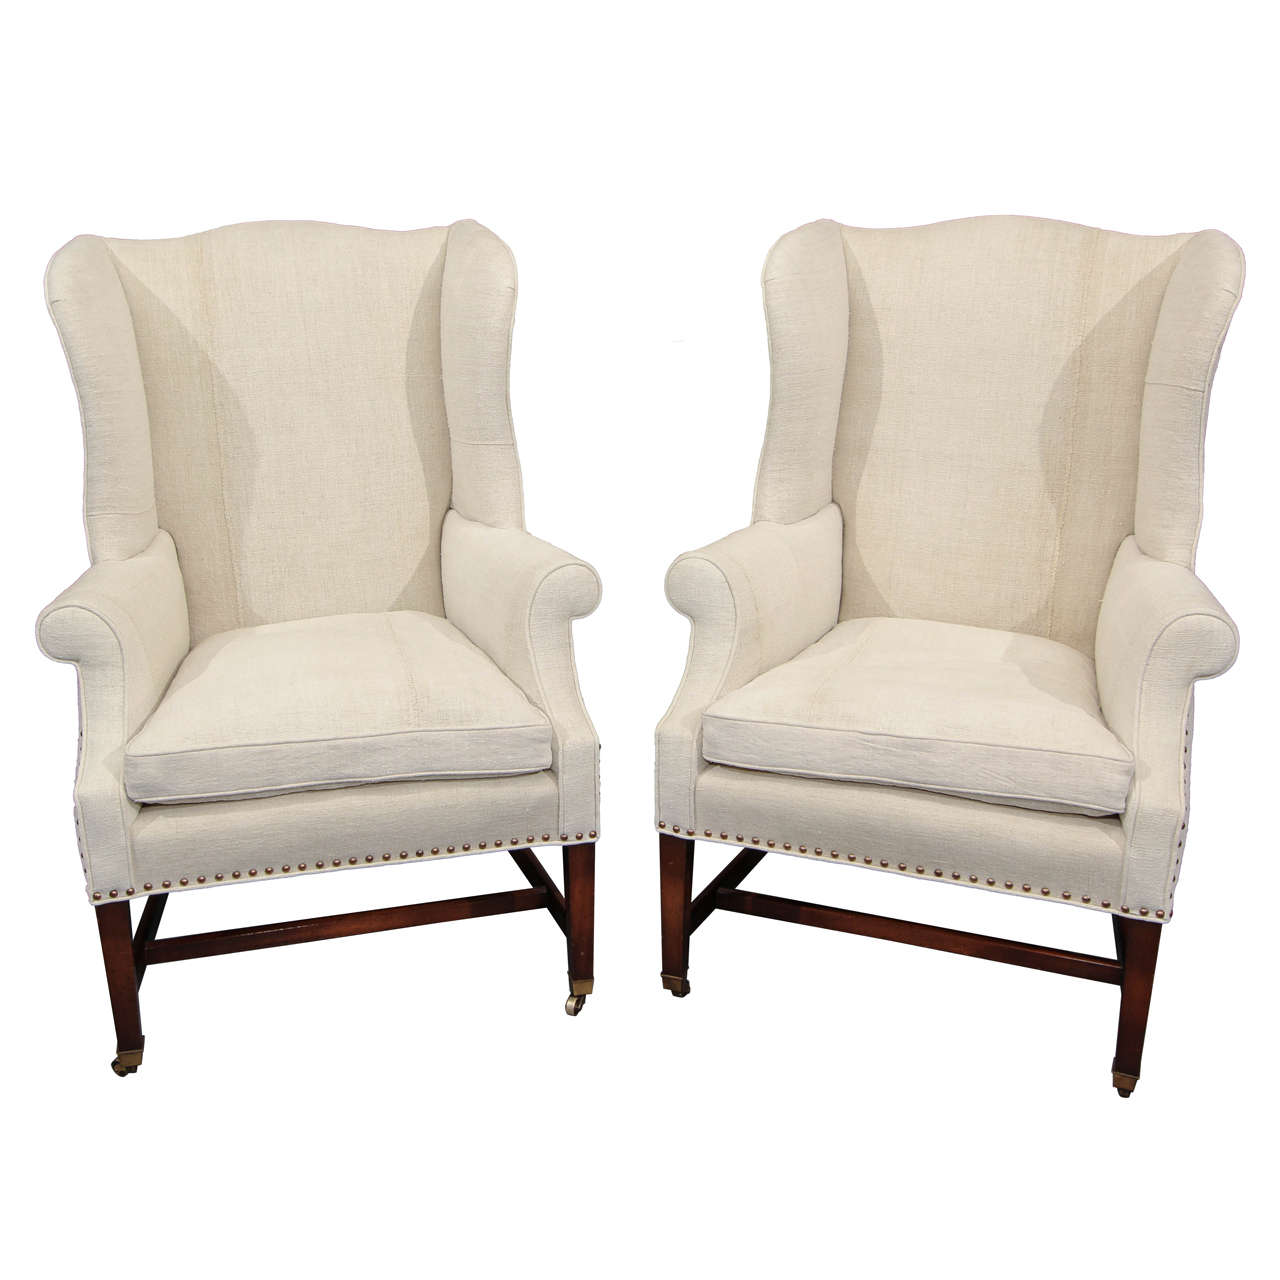 pair wingback chairs : x from 1stdibs.com size 1280 x 1280 jpeg 78kB